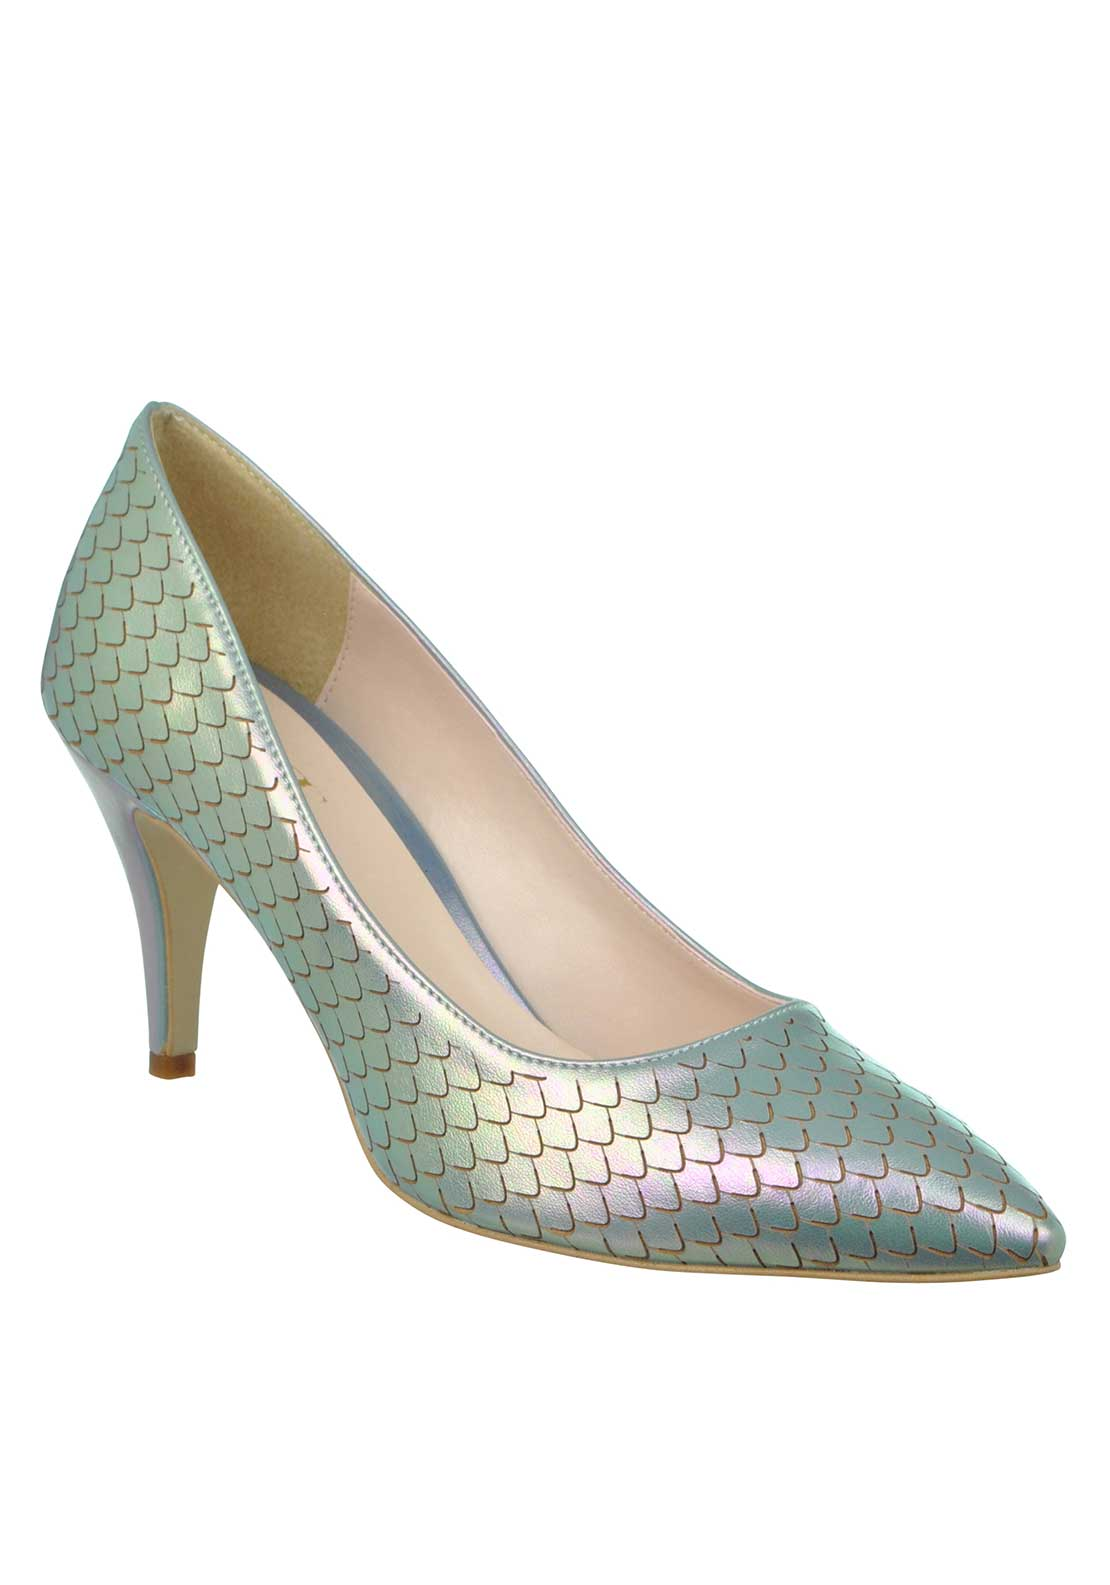 McElhinney's Shimmering Mermaid Print Pointed Toe Low Heeled Shoes, Green